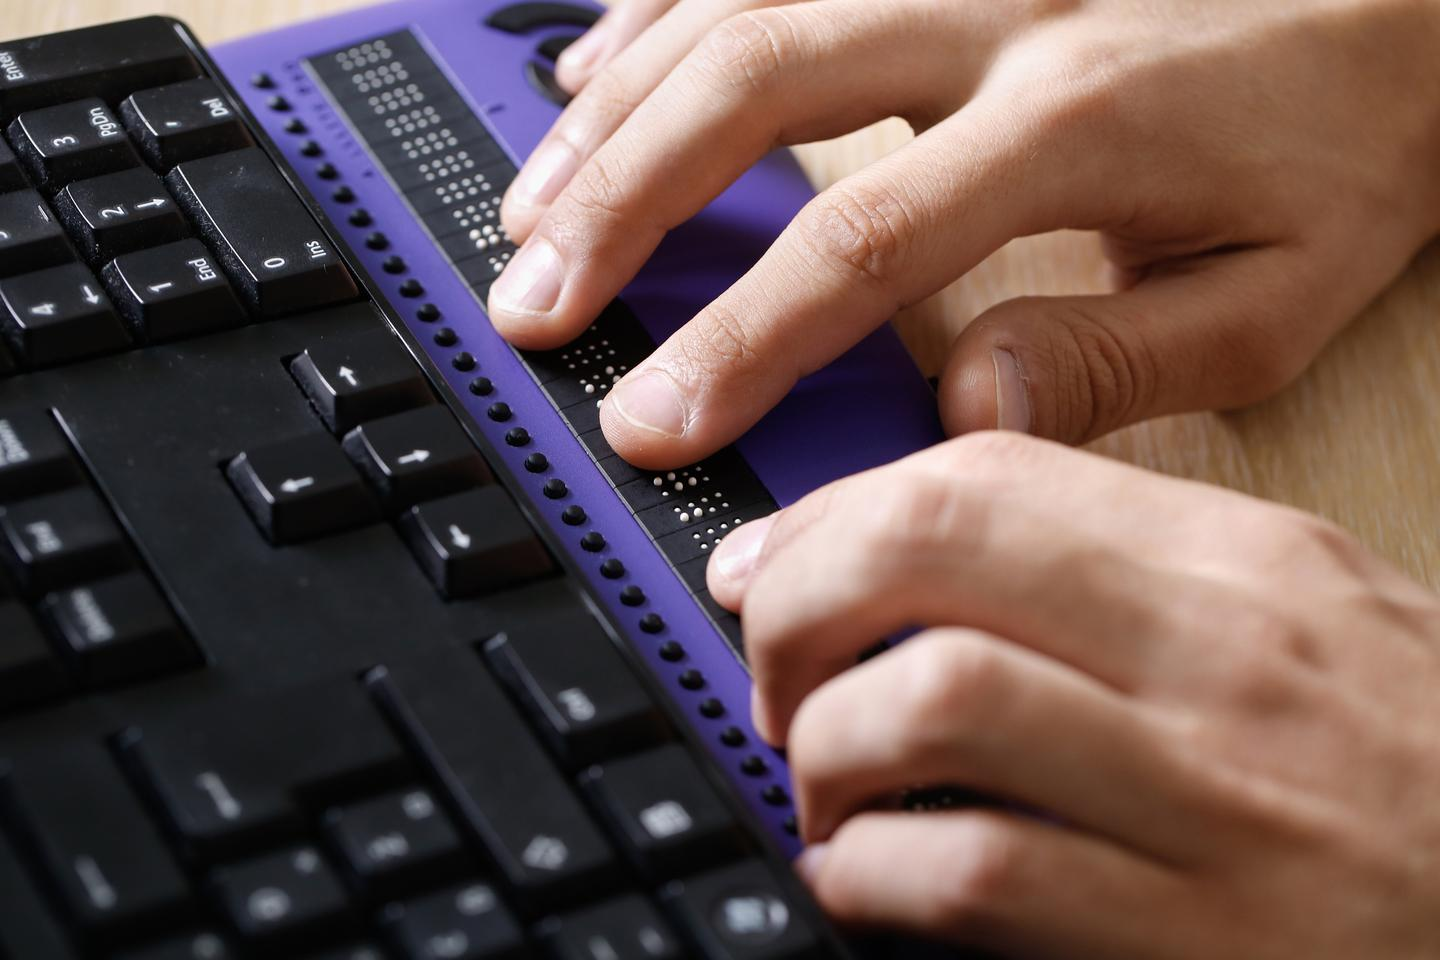 A conventional refreshable braille display, integrated into a keyboard